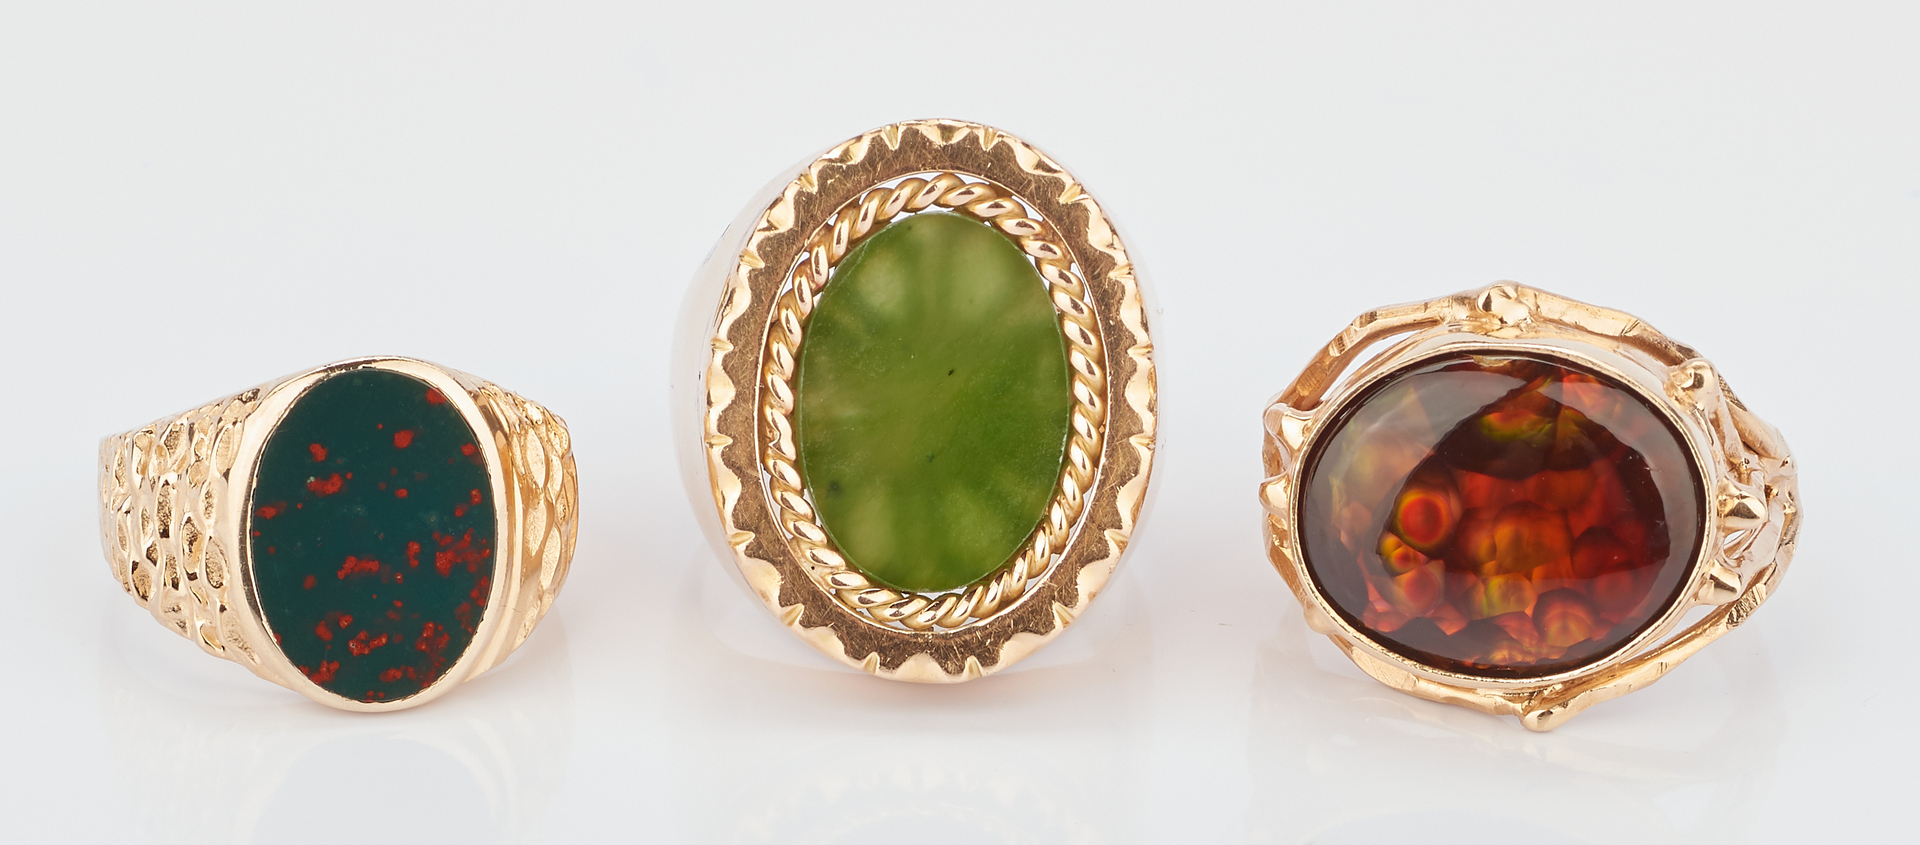 Lot 421: 3 Men's 14K Gold Rings w/ Stones